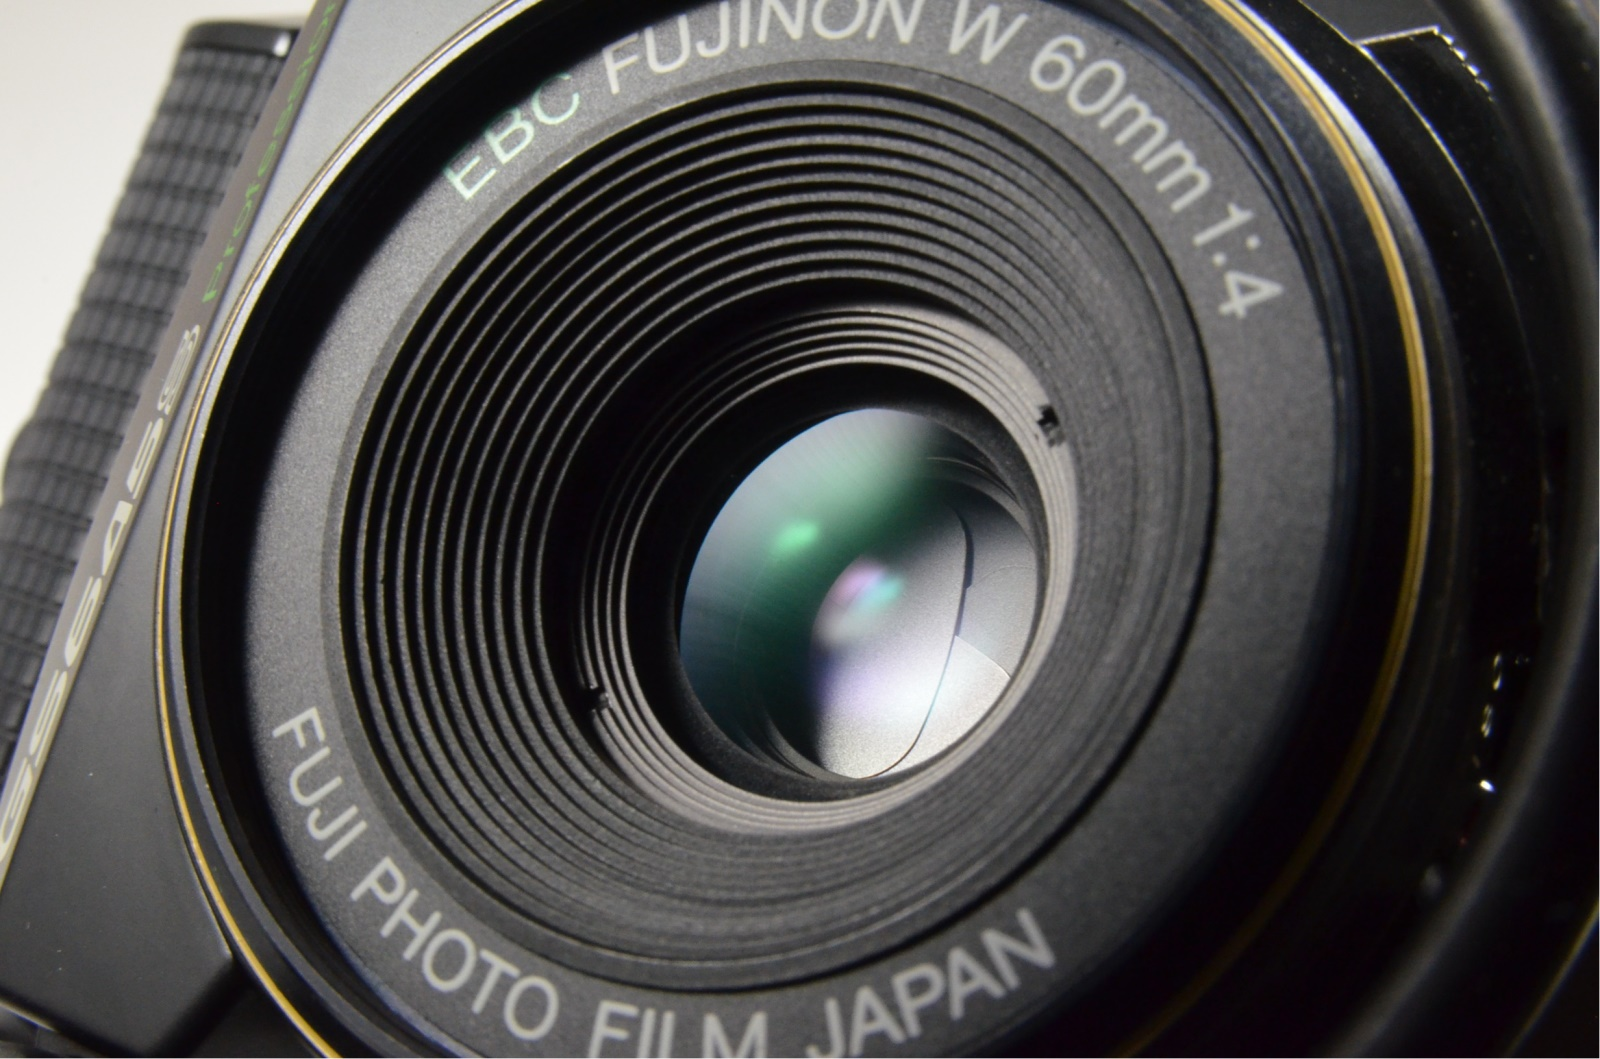 fuji fujifilm gs645s fujinon w 60mm f4 camera from japan shooting tested